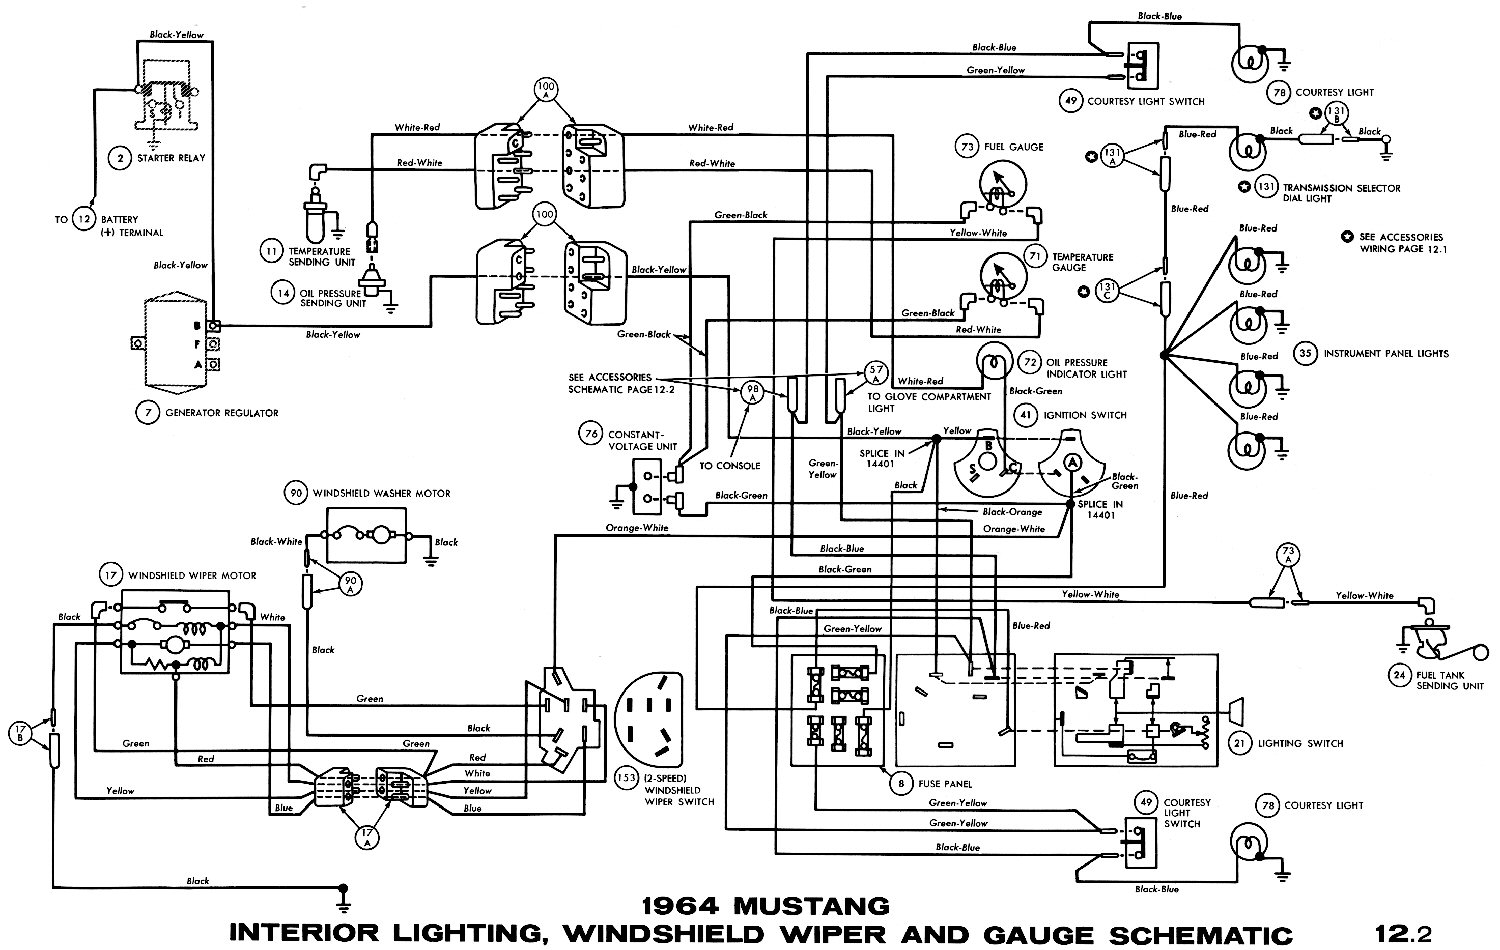 1964 ford mustang fuse box wiring diagram todays1964 mustang fuse diagram box wiring diagram 1965 mustang fuse box 1964 ford mustang fuse box